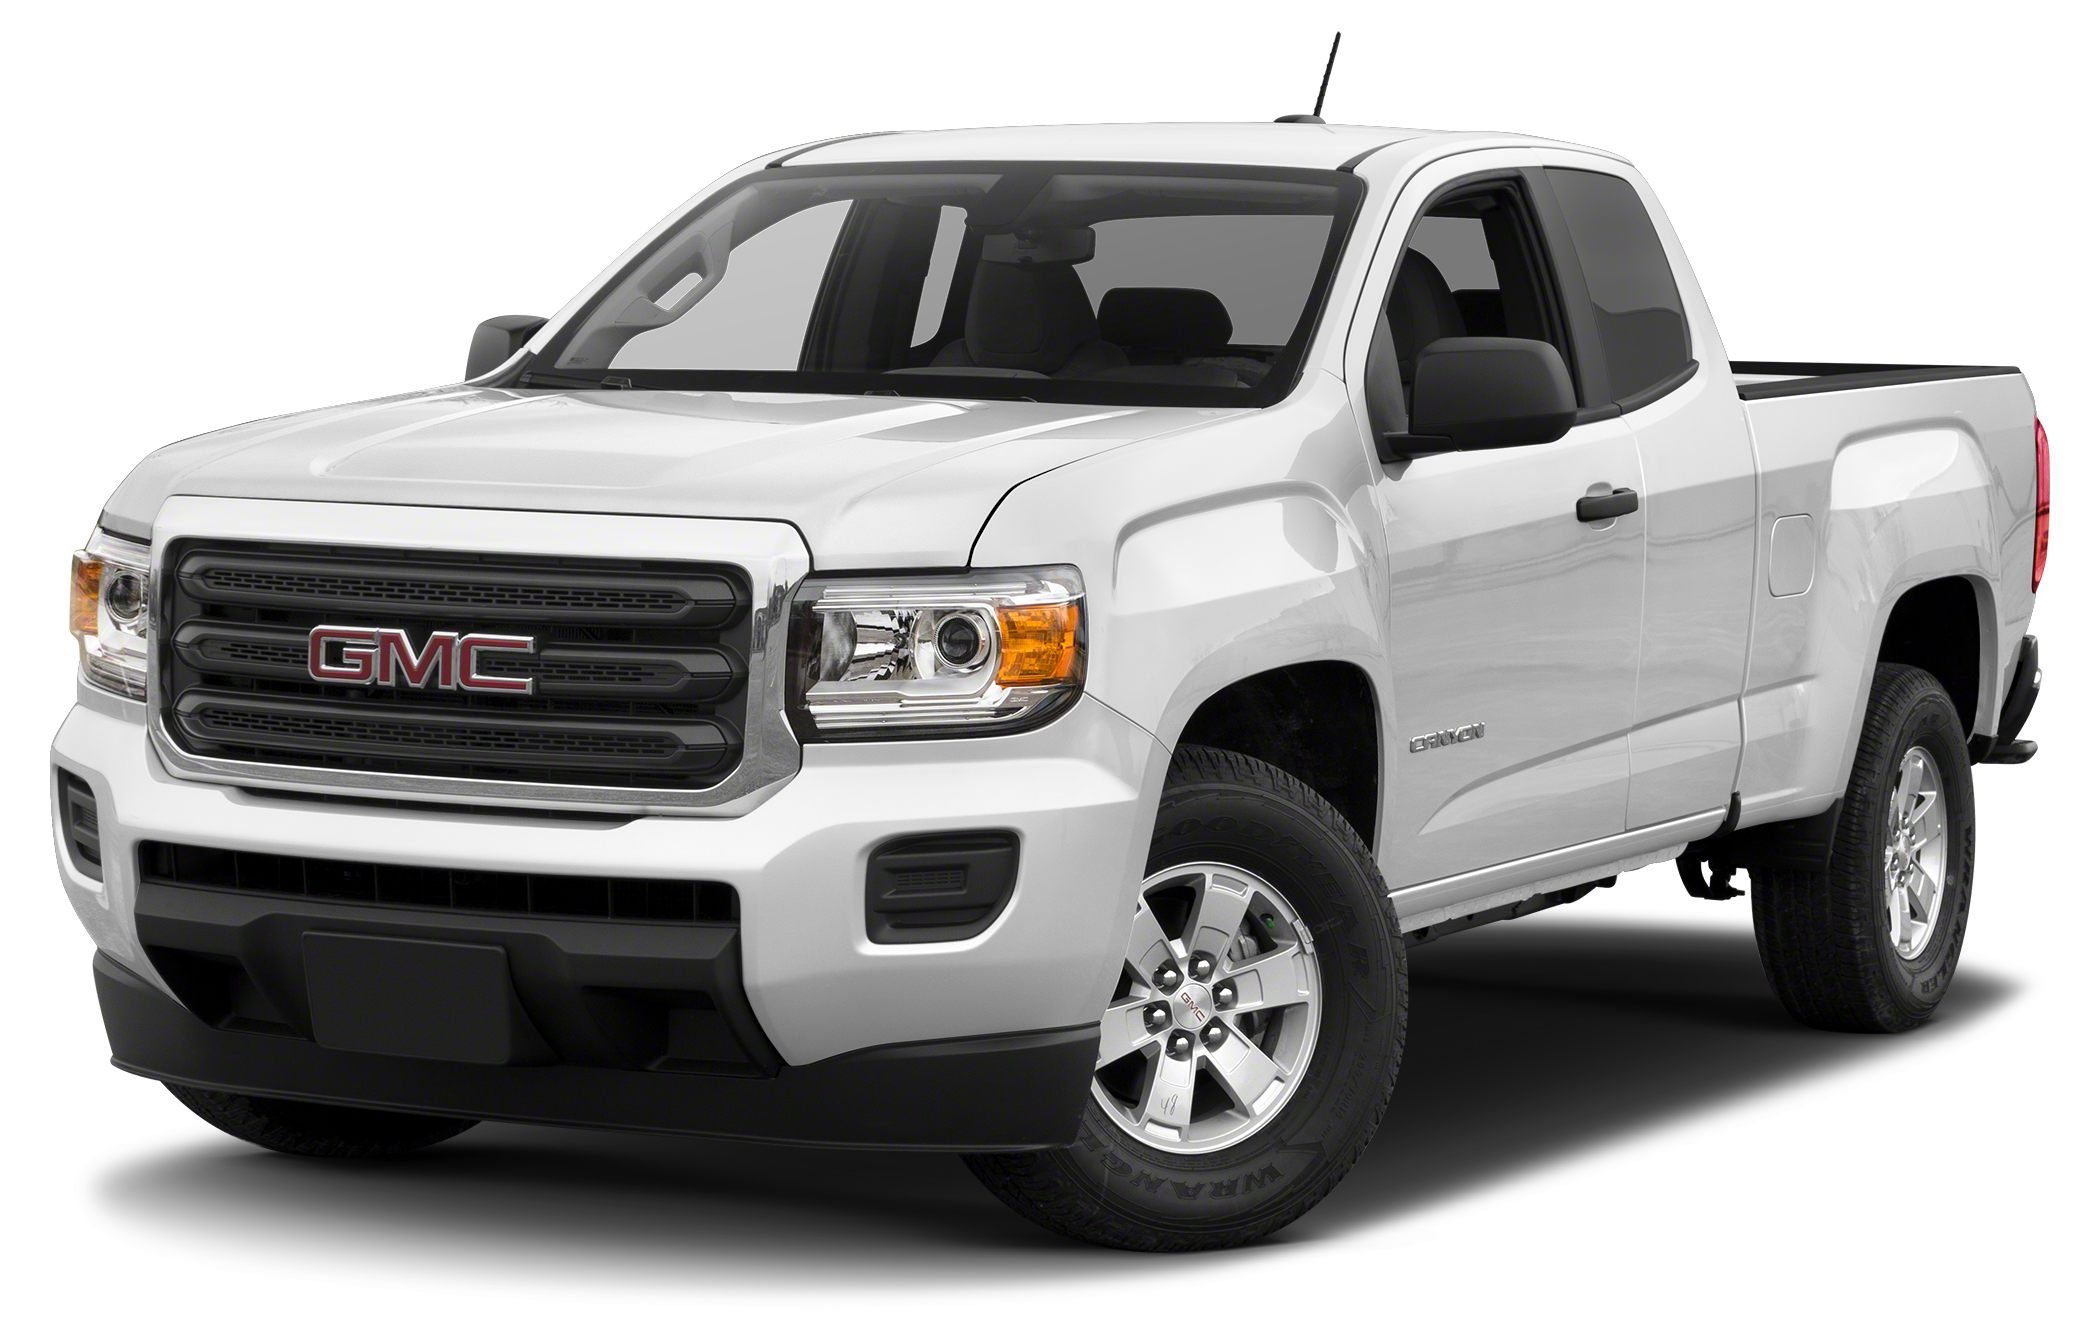 2016 GMC Canyon Base The GMC Canyon will redefine the small truck category with segment-leading fe